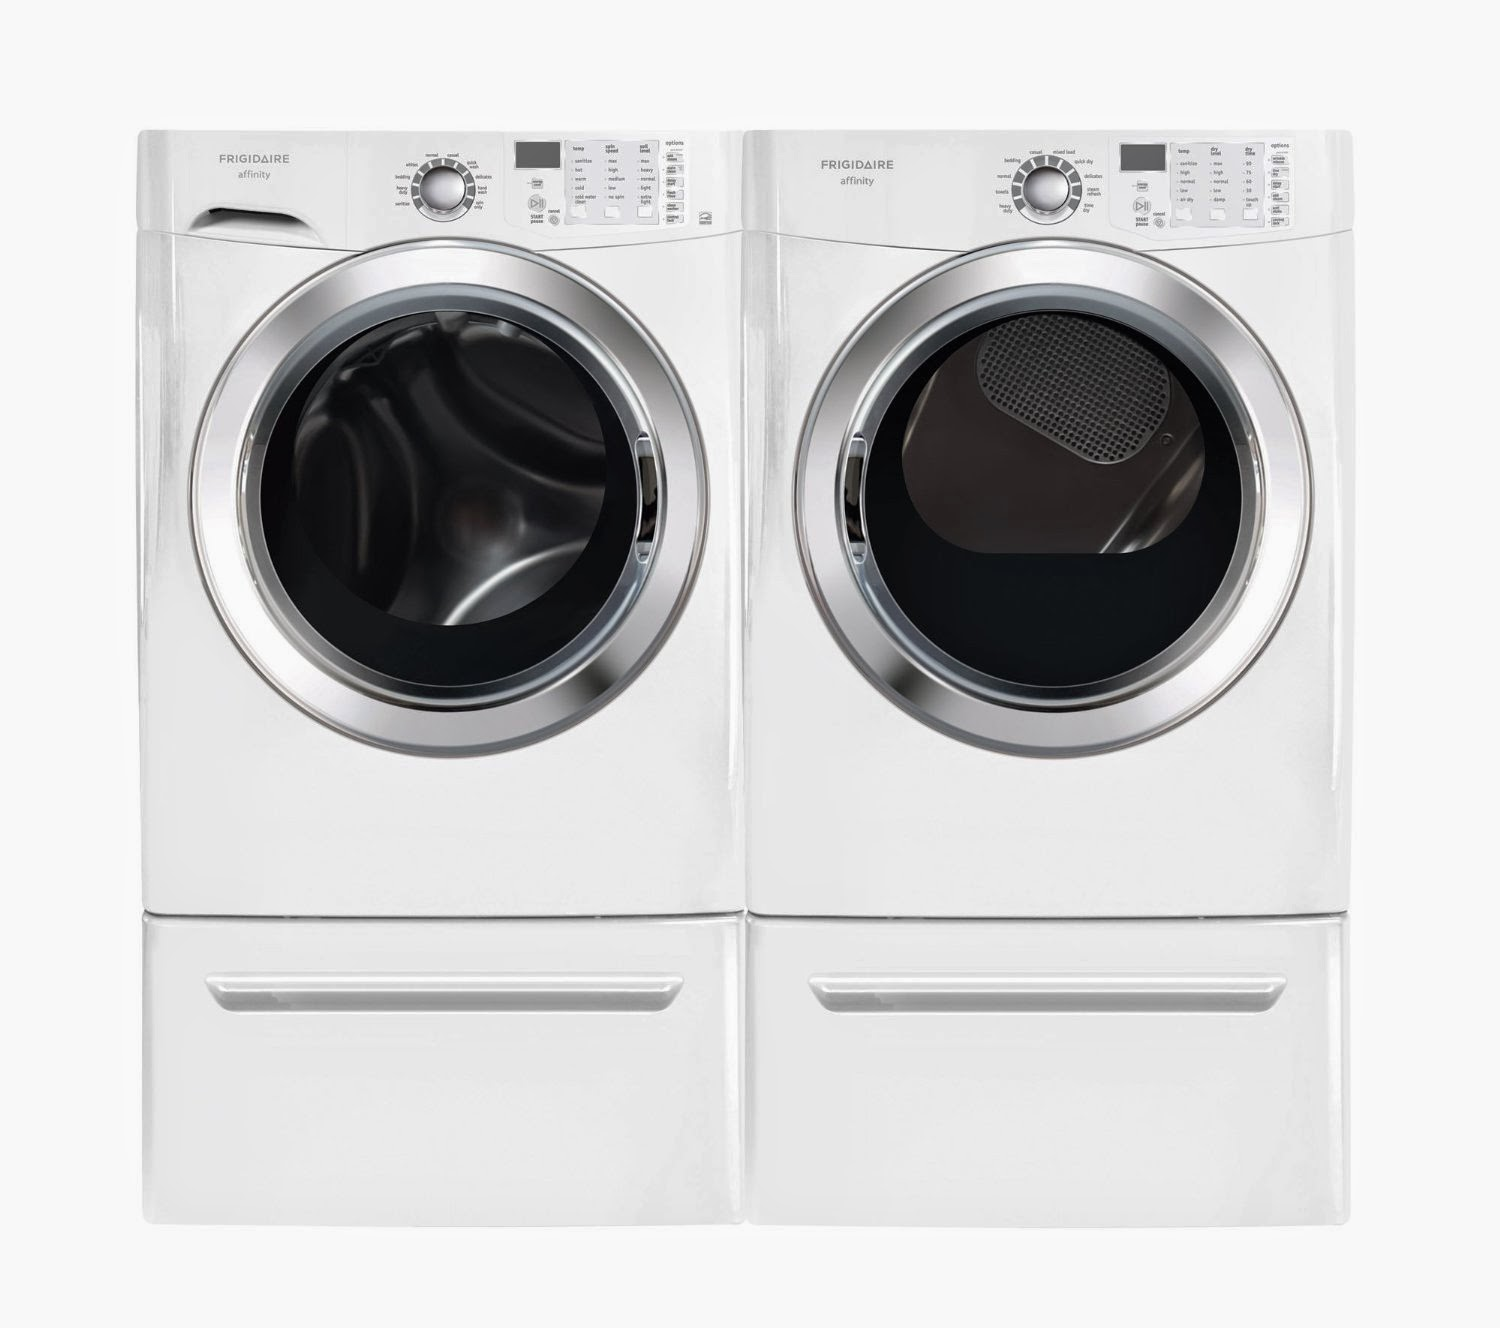 Frigidaire Washer And Dryer Frigidaire Front Load Washer